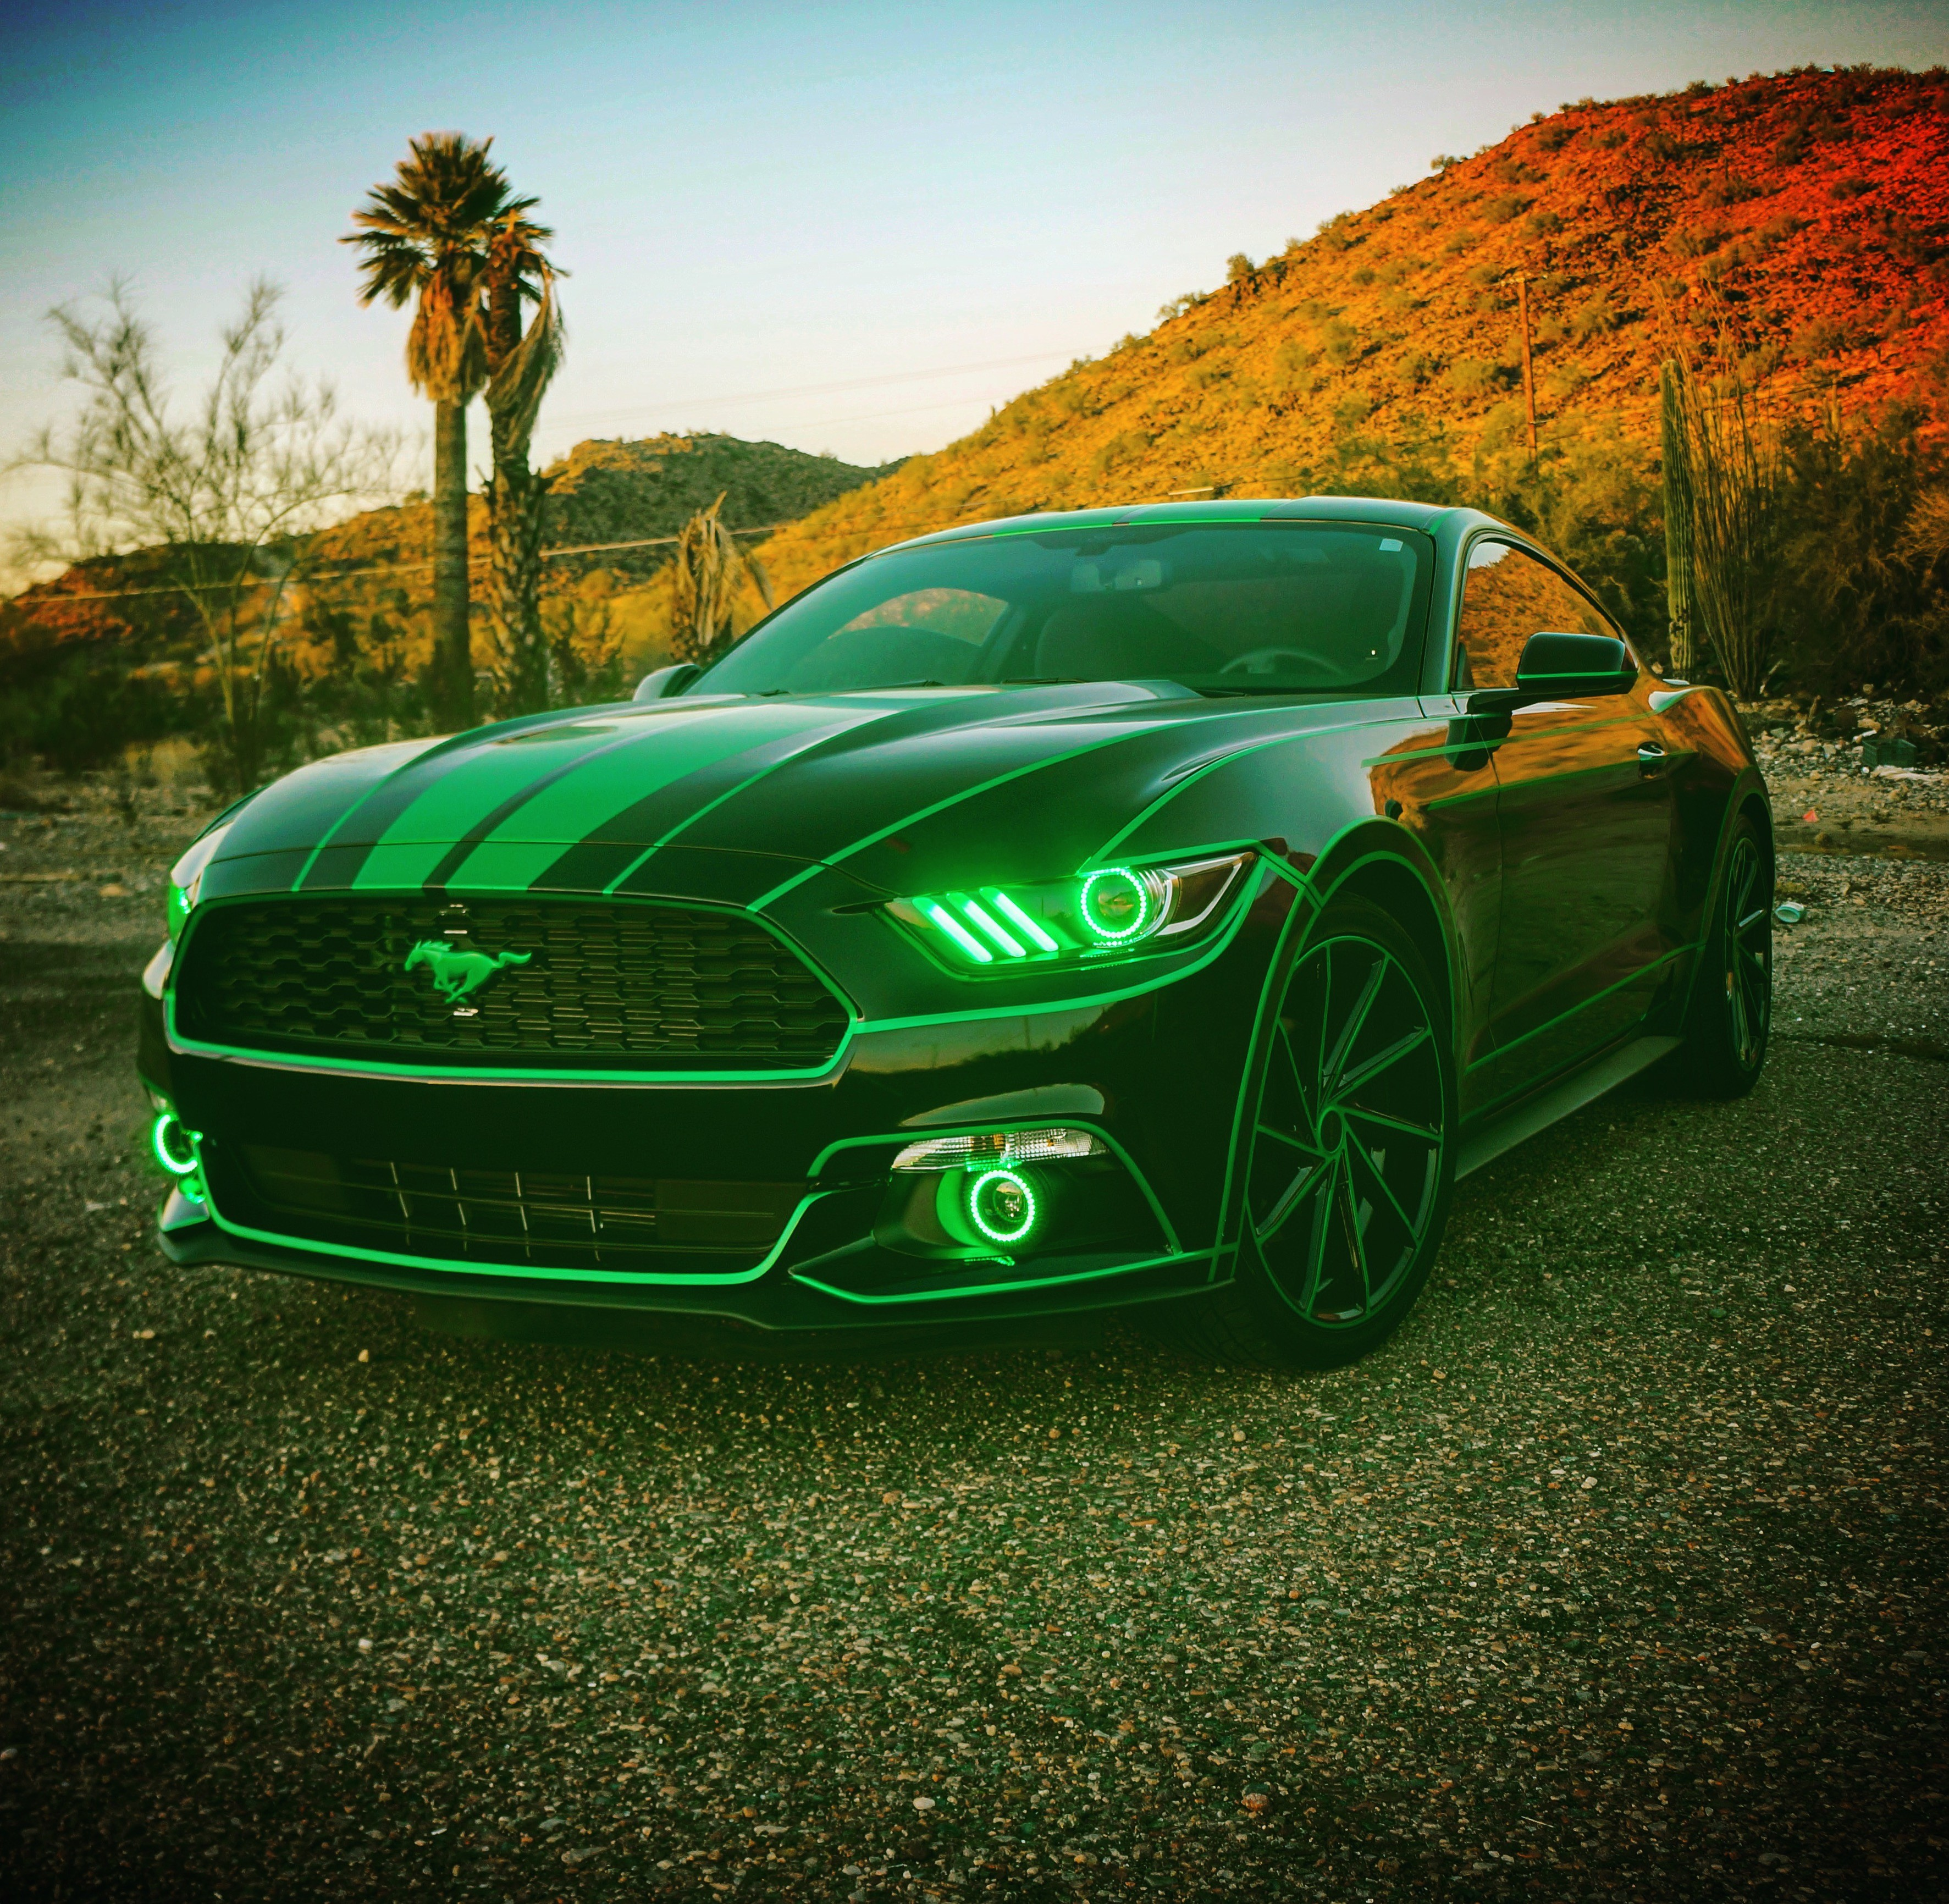 Ford Mustang Consumer Reports >> 2015 Ford Mustang 2 3l Turbo Ecoboost Gets Positive Review From